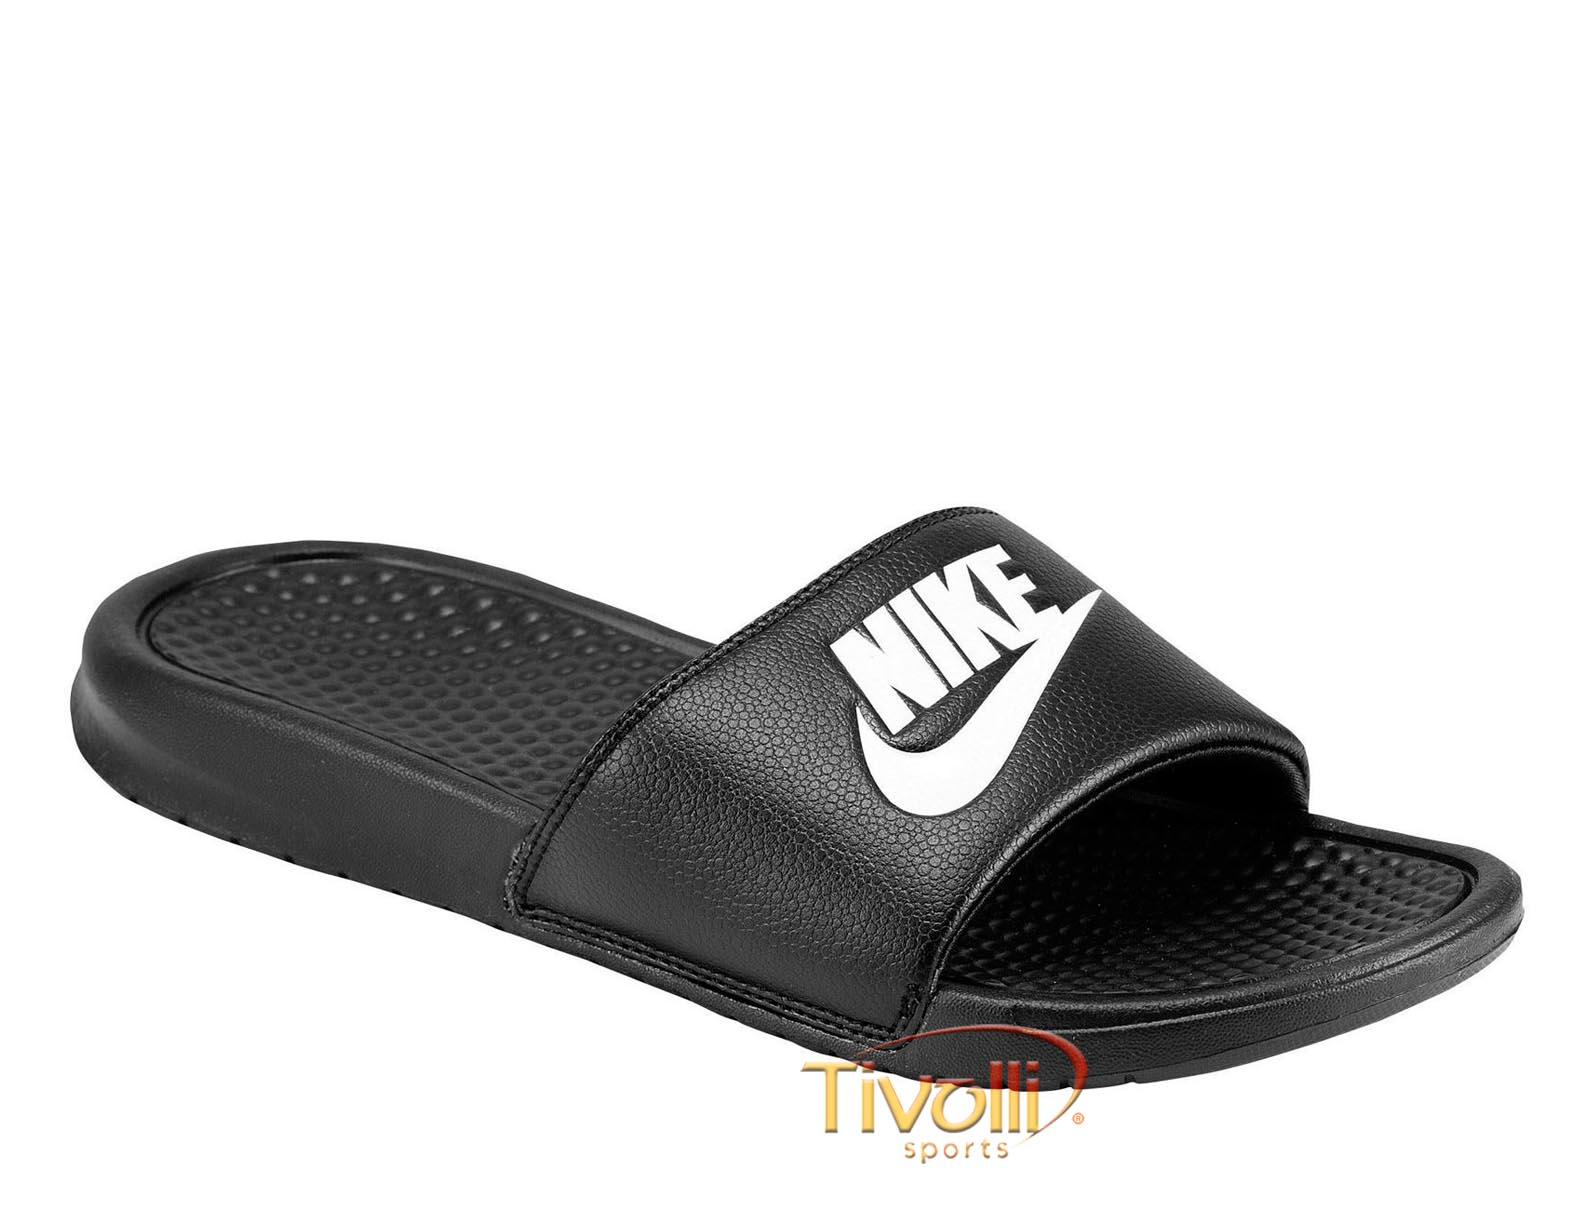 b67059757 Chinelo Nike Benassi Just Do It Preto e Branco. Código: 343880 090